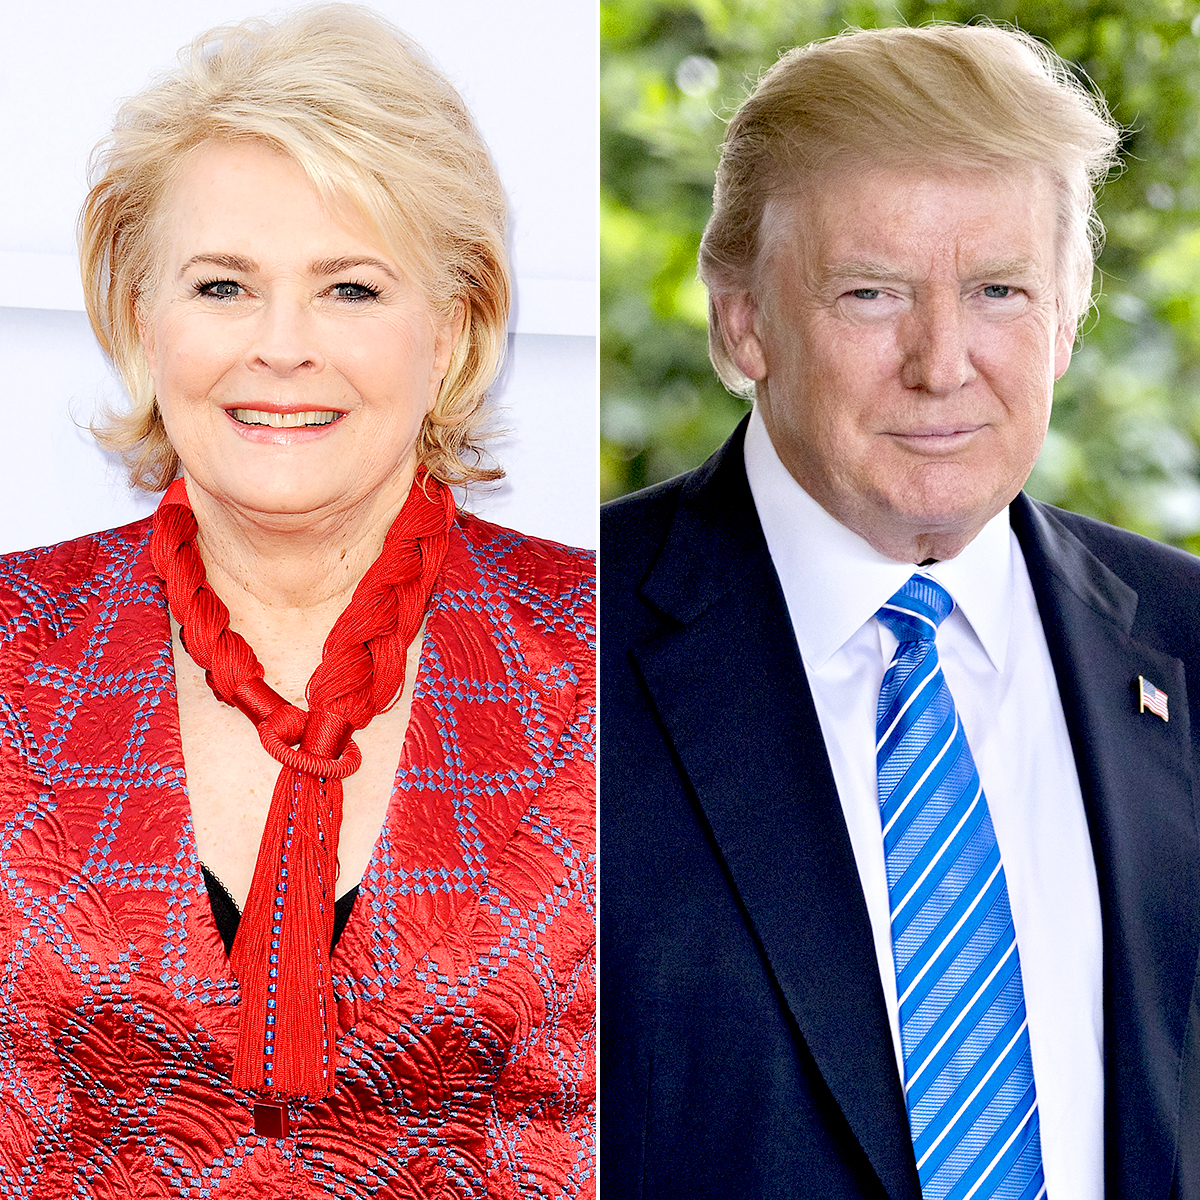 Candice Bergen and Donald Trump